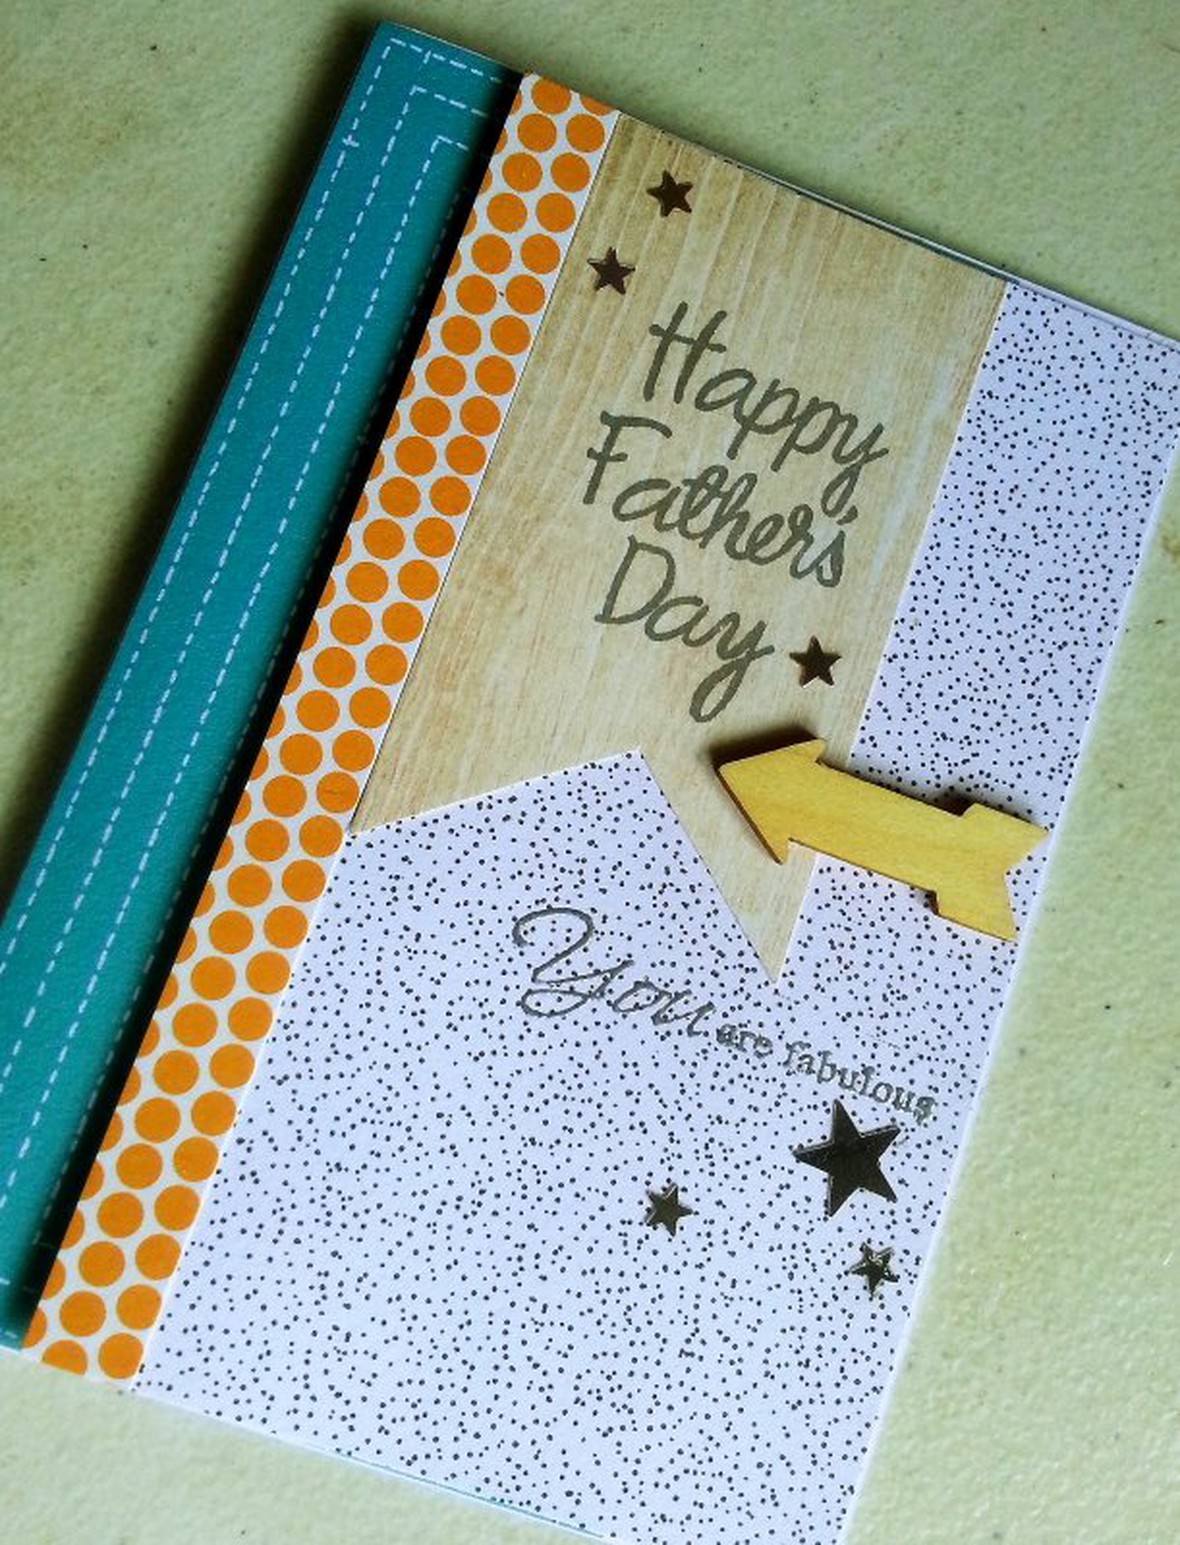 Father%2527s day card.jpgsml img original